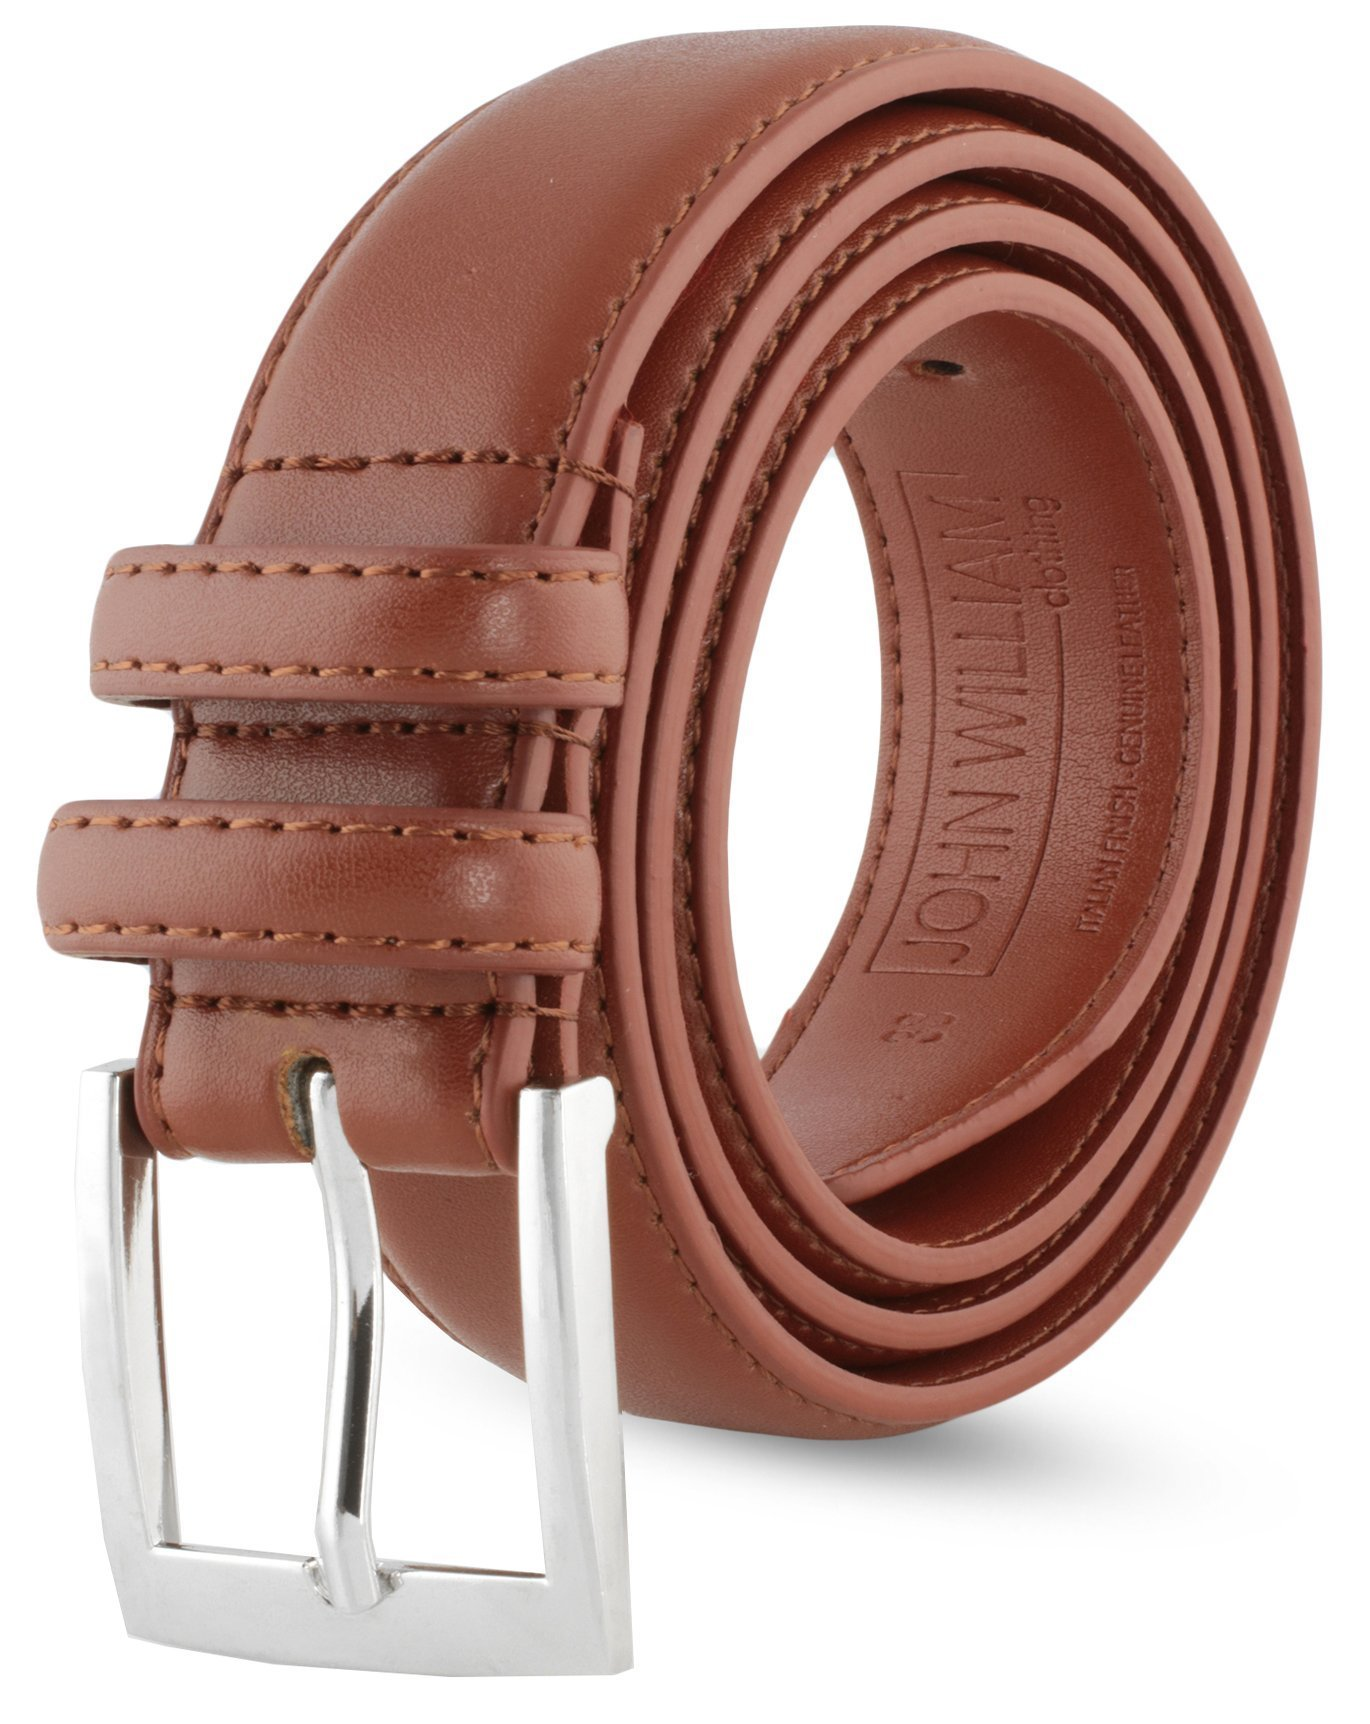 Leather Belts For Men - Mens Brown Belt - 1.25'' Dress & Casual Men's Belt in Gift Bag - 38 Burnt Amber